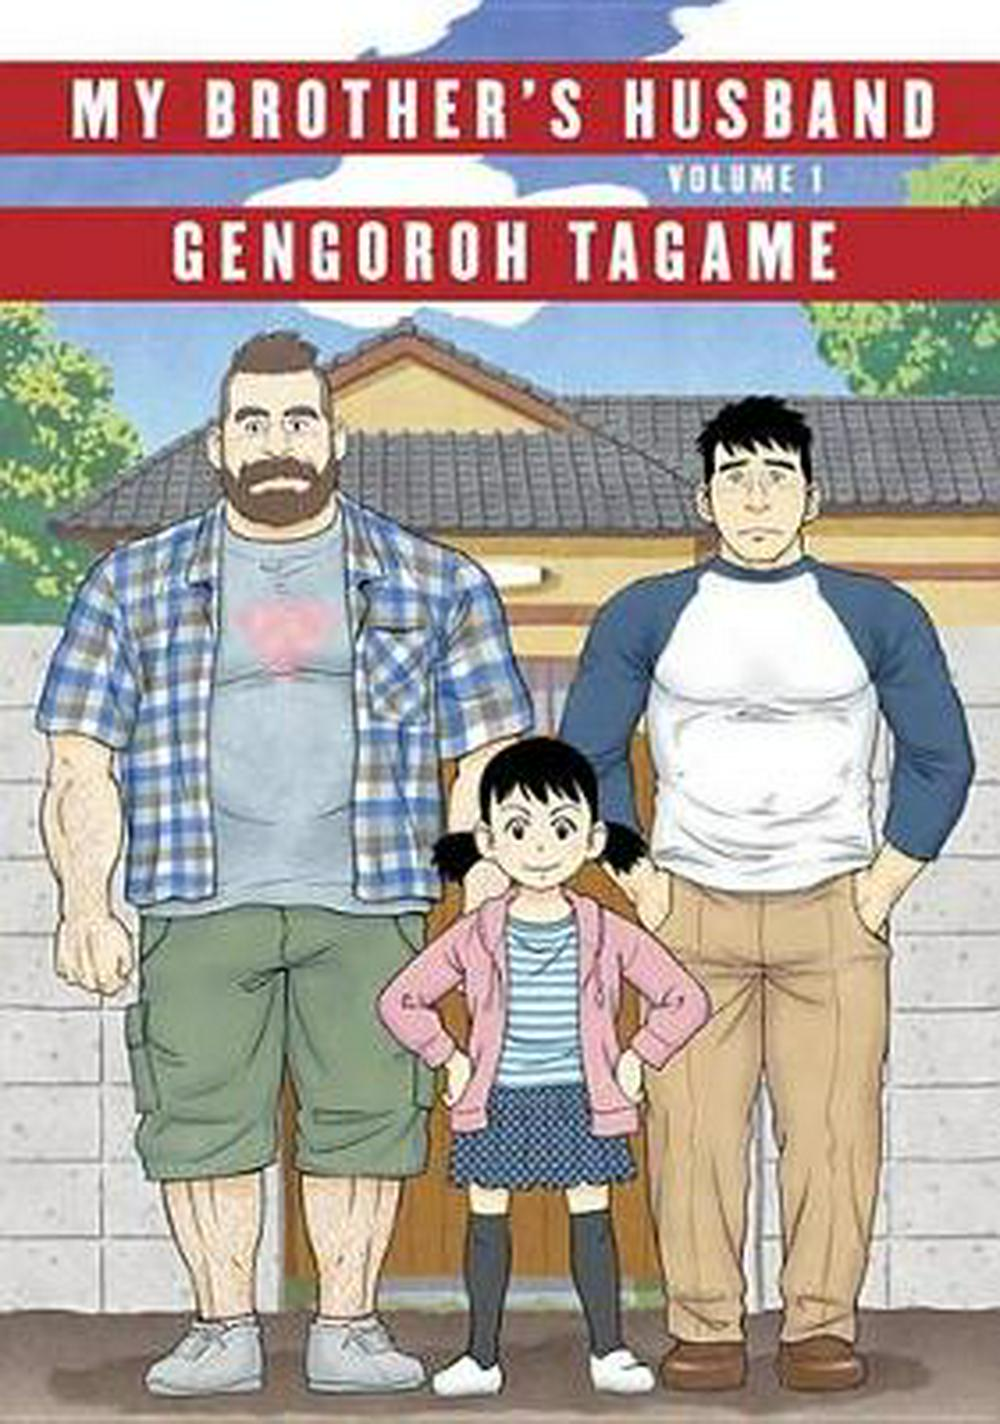 My Brother's Husband, Volume 1 (Pantheon Graphic Novels) by Gengoroh Tagame, ISBN: 9781101871515